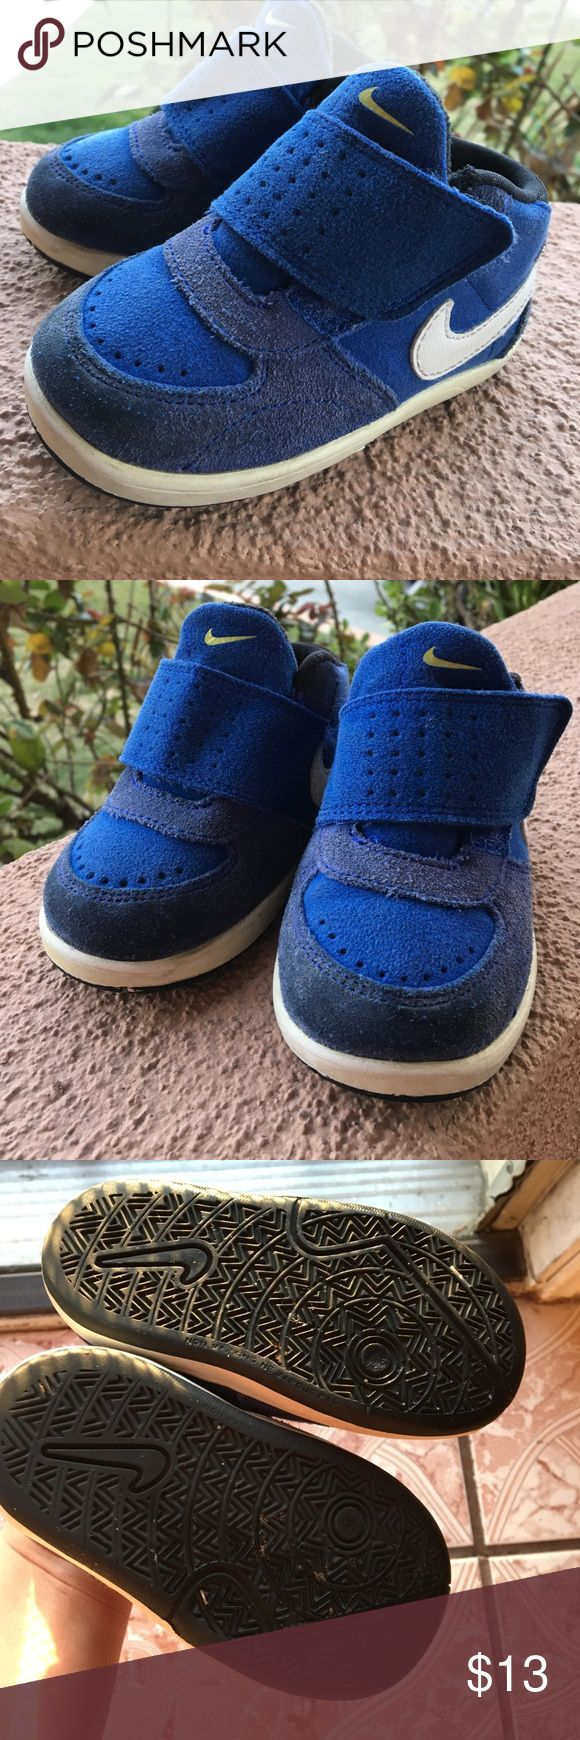 Toddler Nike shoes size 5c Gently worn Toddle Nike blue tennis Shoes Nike Shoes Athletic Shoes